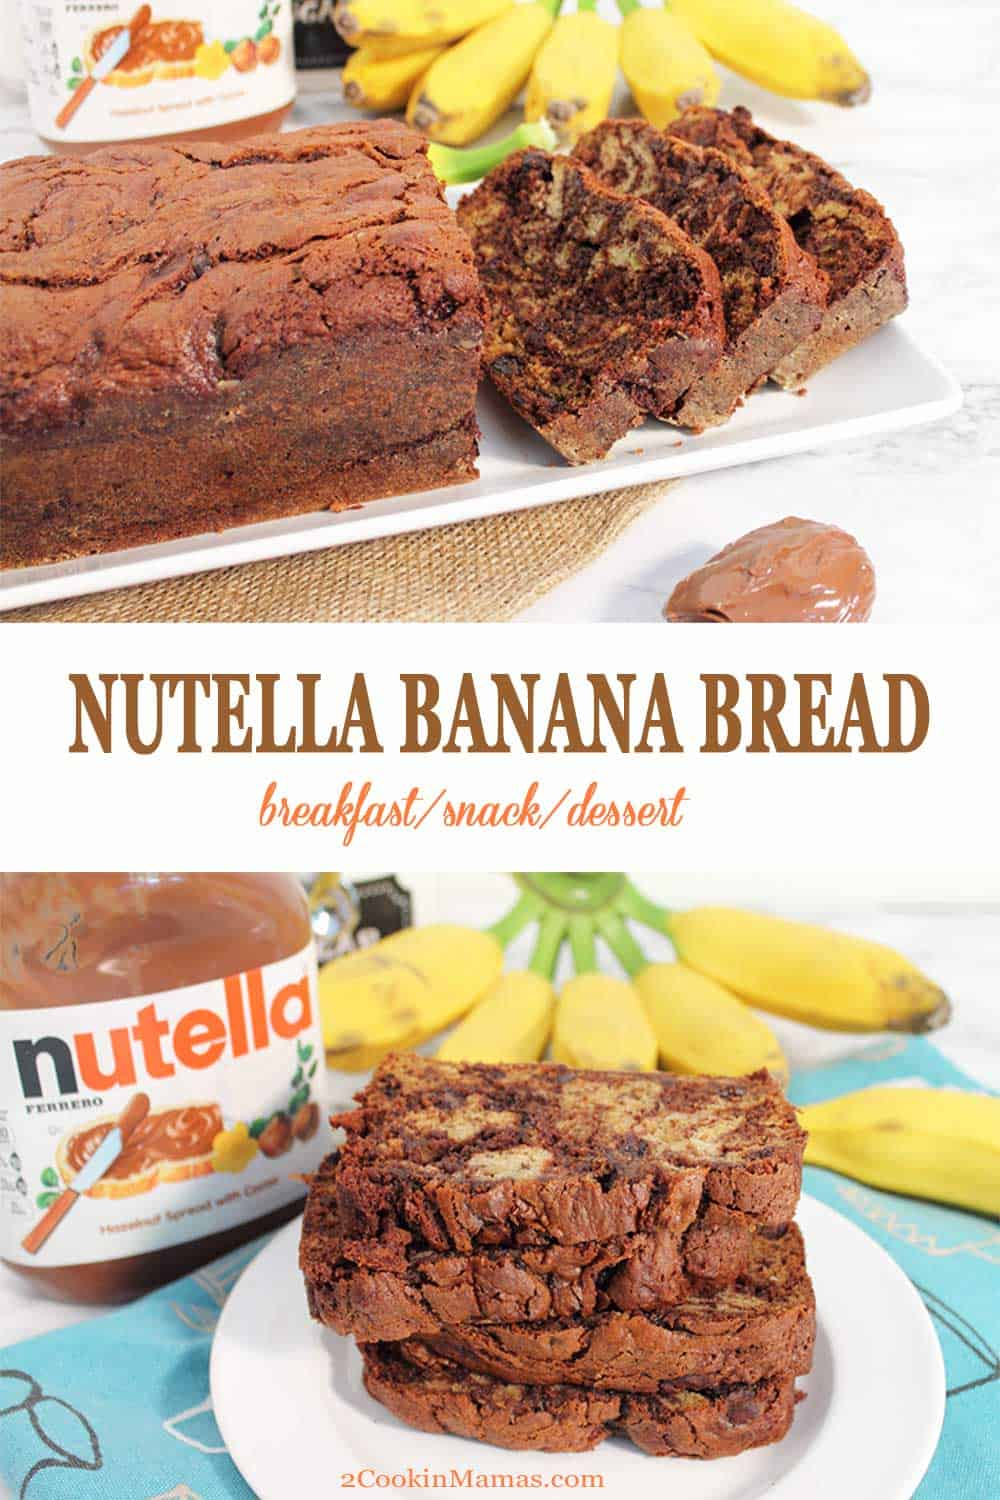 Nutella Banana Bread | 2 Cookin Mamas A sweet & delicious banana bread with a surprise inside - Nutella! This Nutella Banana Bread has all the moist and delicious taste of a banana bread with loads of everyone's favorite spread swirled throughout. Serve it as a special breakfast treat, a snack or top it with a chocolate glaze for a fabulous dessert.#bananabread #quickbread #bananas #nutella #breakfast #dessert #snack #recipe